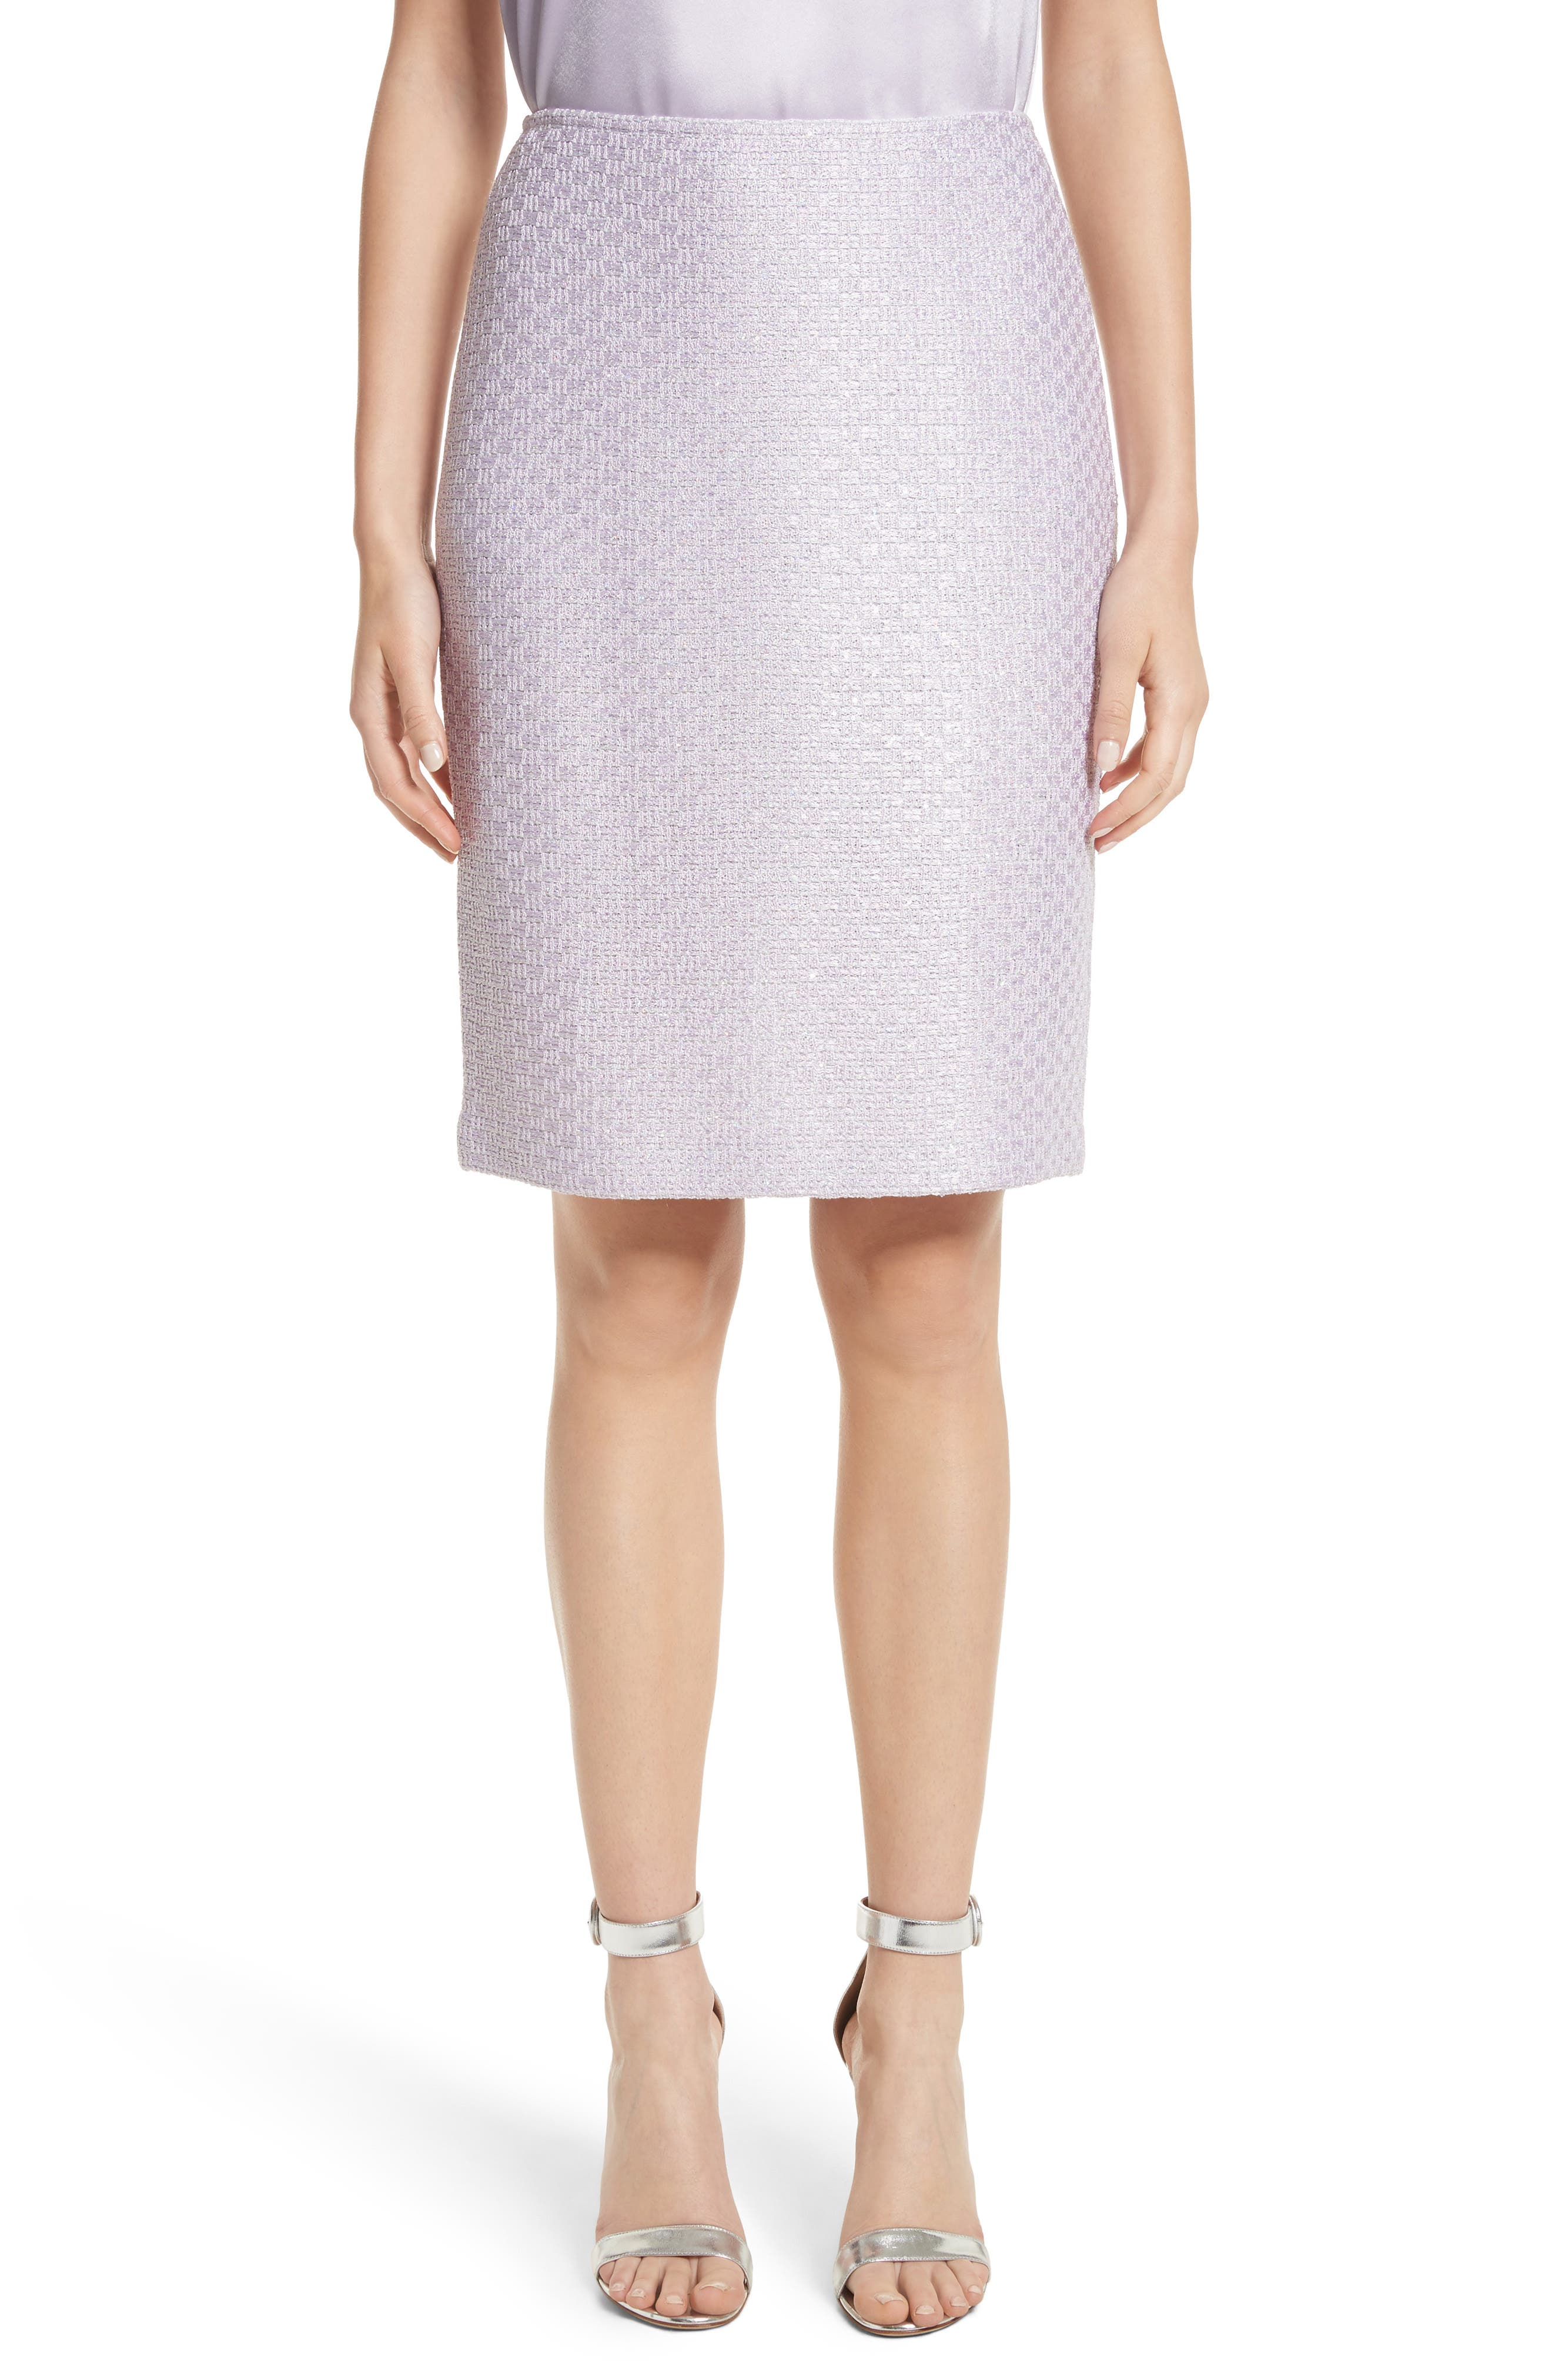 St. John Collection Hansh Sequin Knit Pencil Skirt